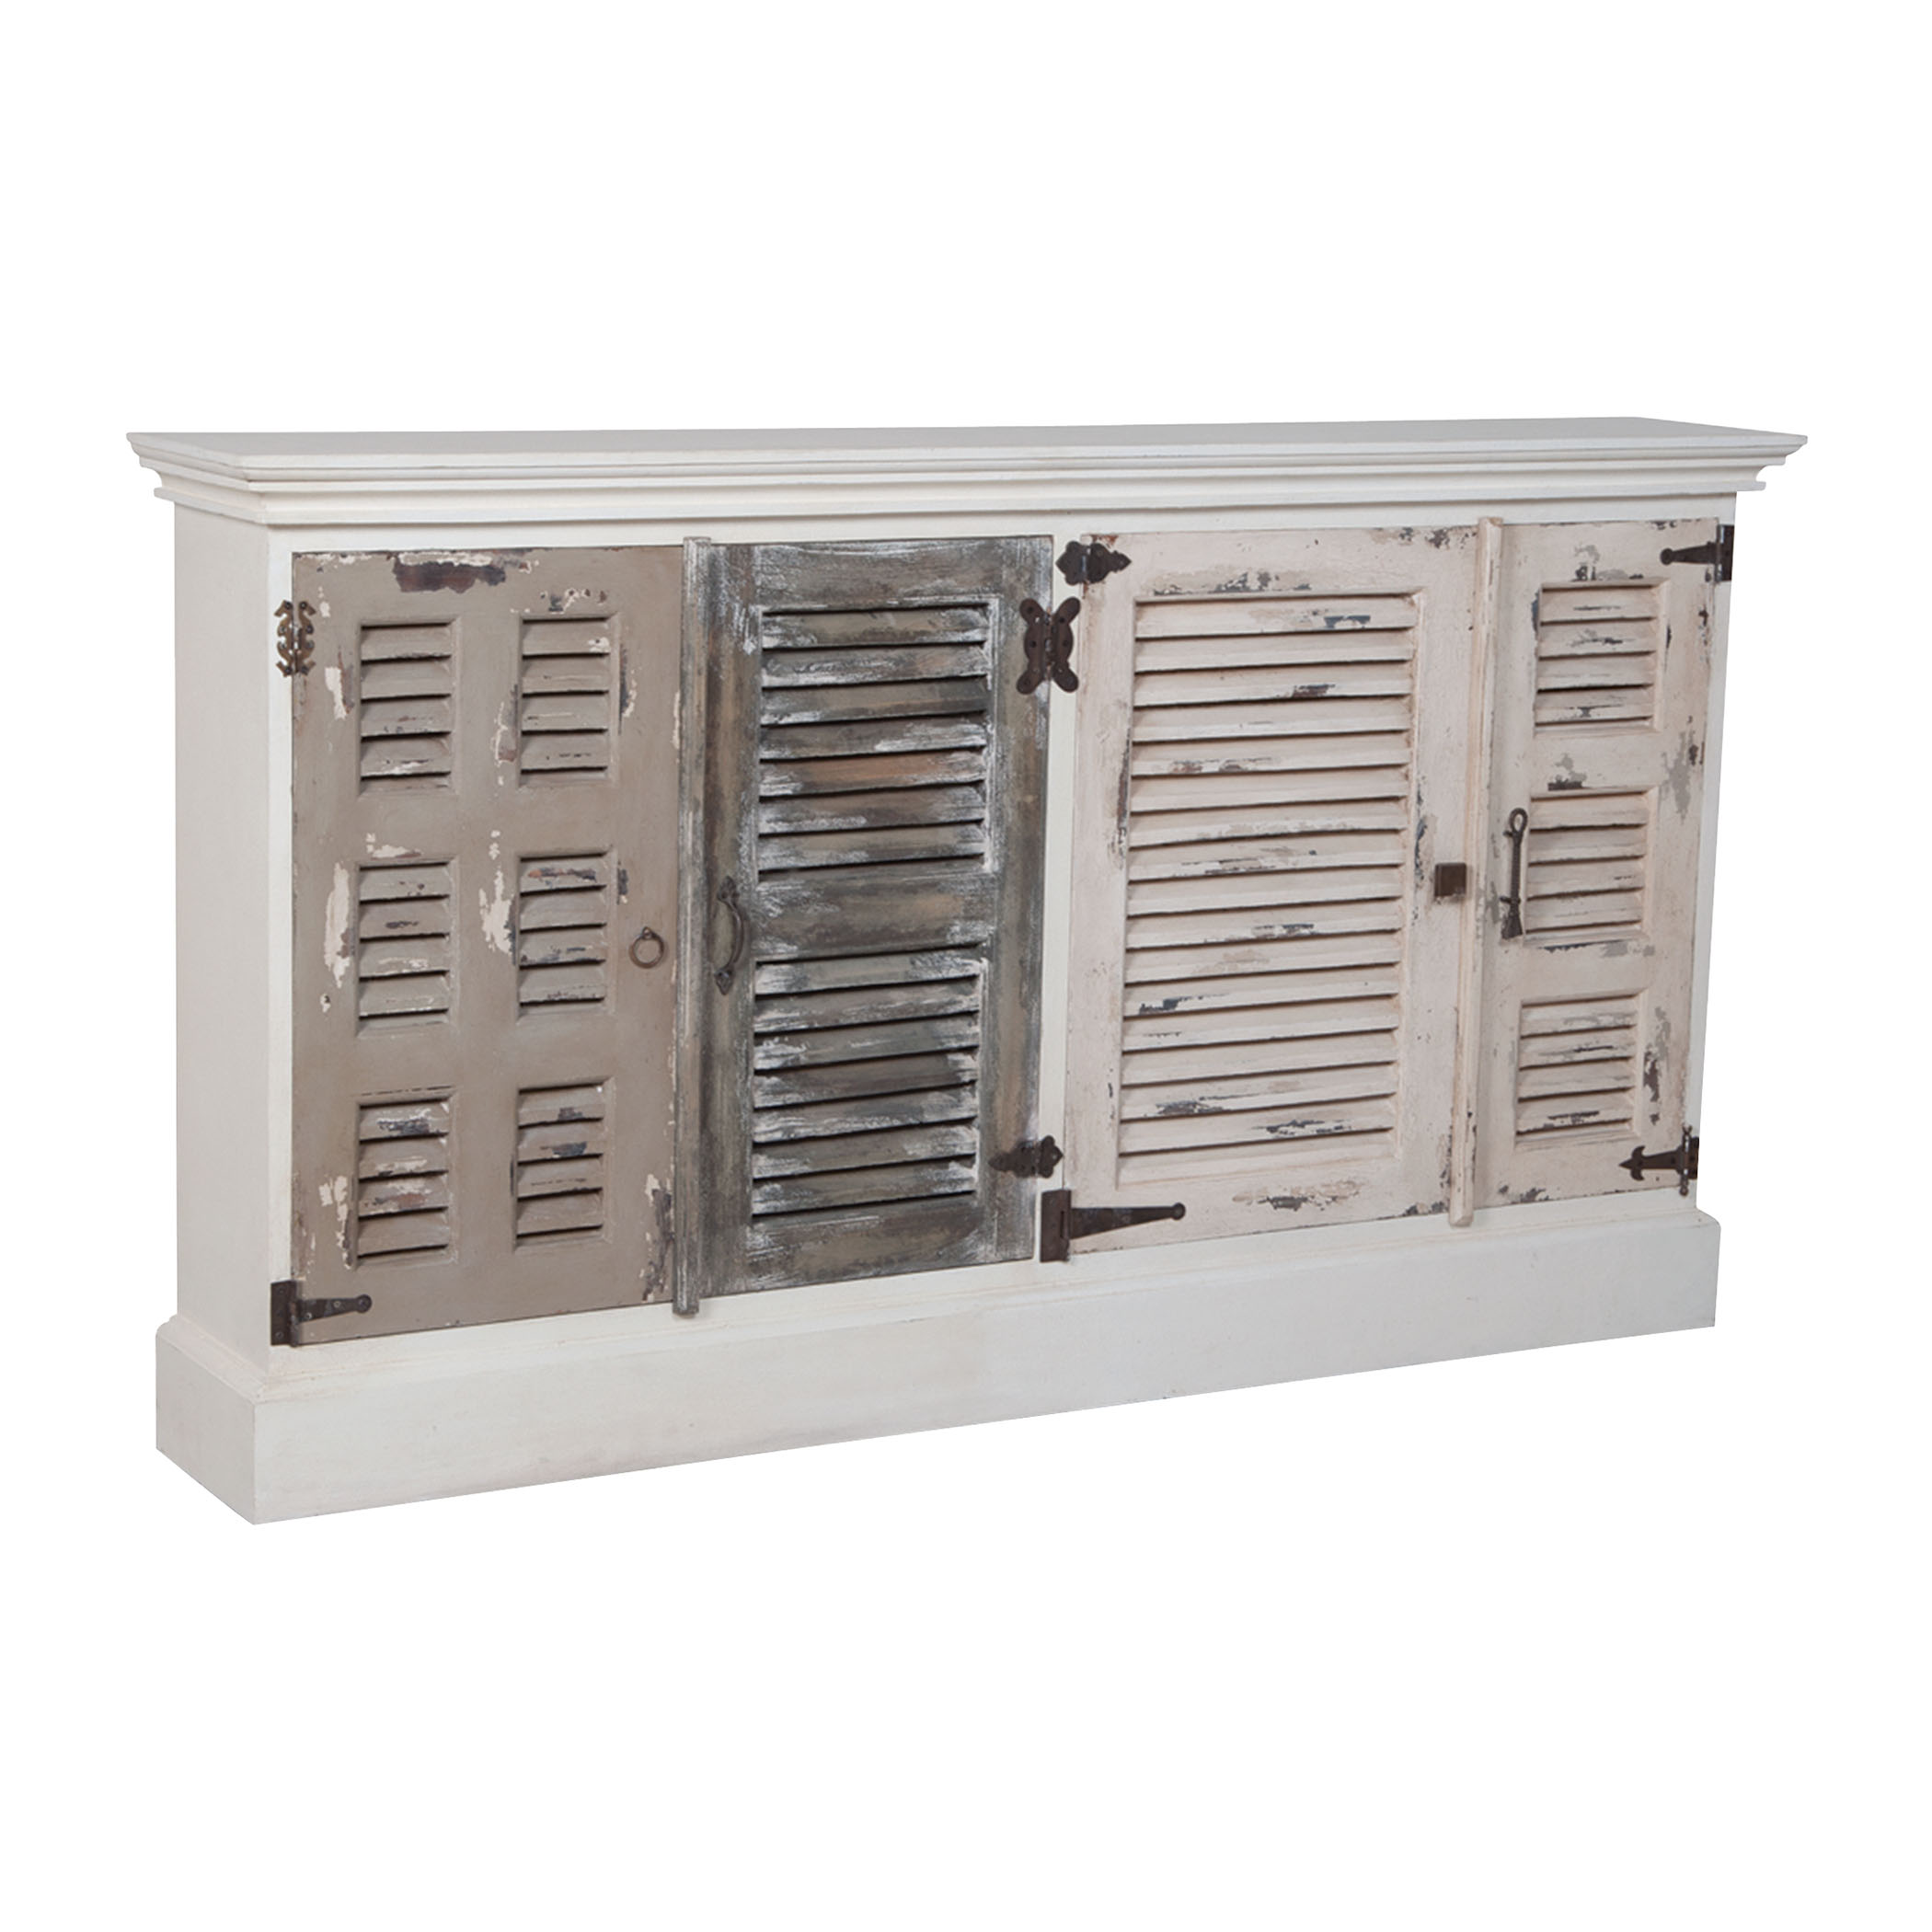 Waterfront 4-Door Shuttered Credenza in Garden Lattice White and Greys | Elk Home